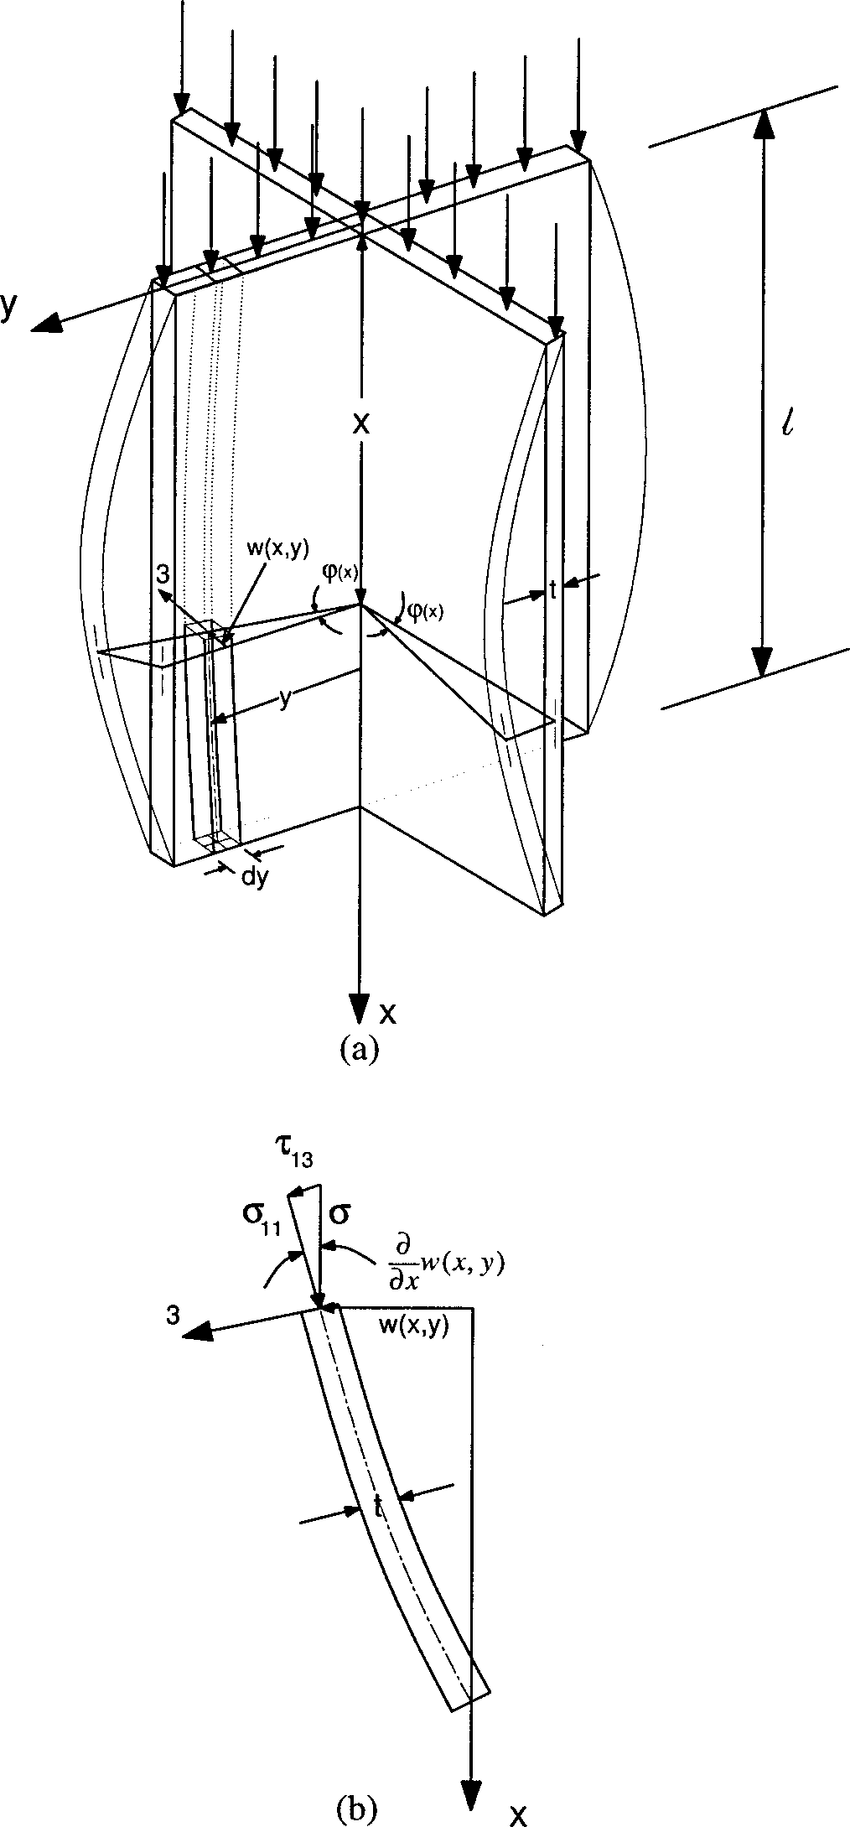 hight resolution of a schematic of a cruciform column under axial compression geometry of flanges has bifurcated